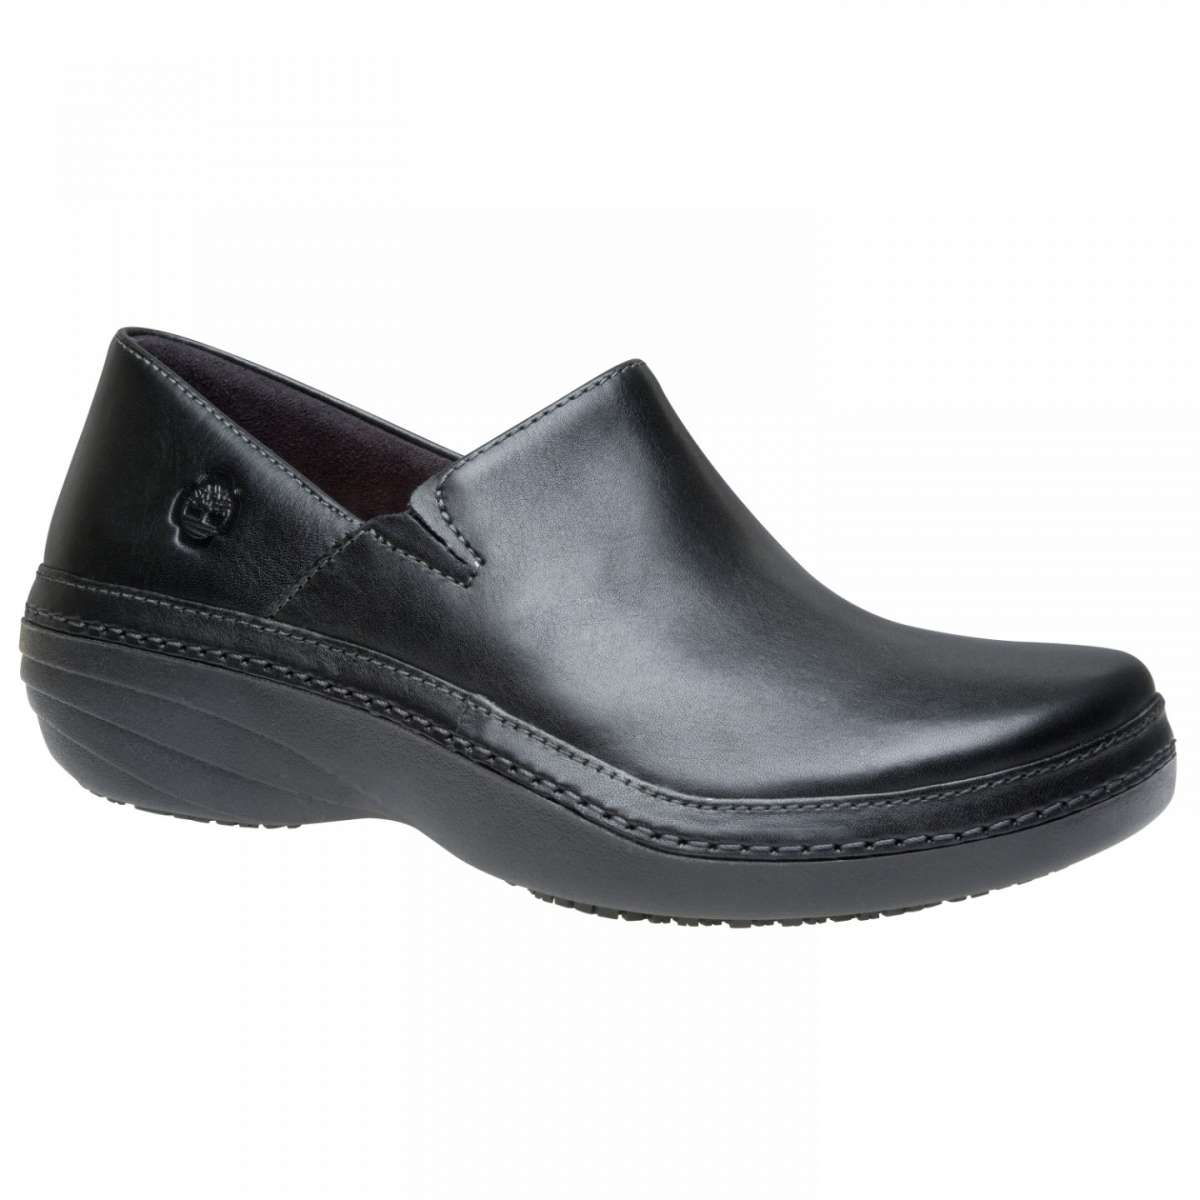 Mocassini donna Timberland in pelle nera